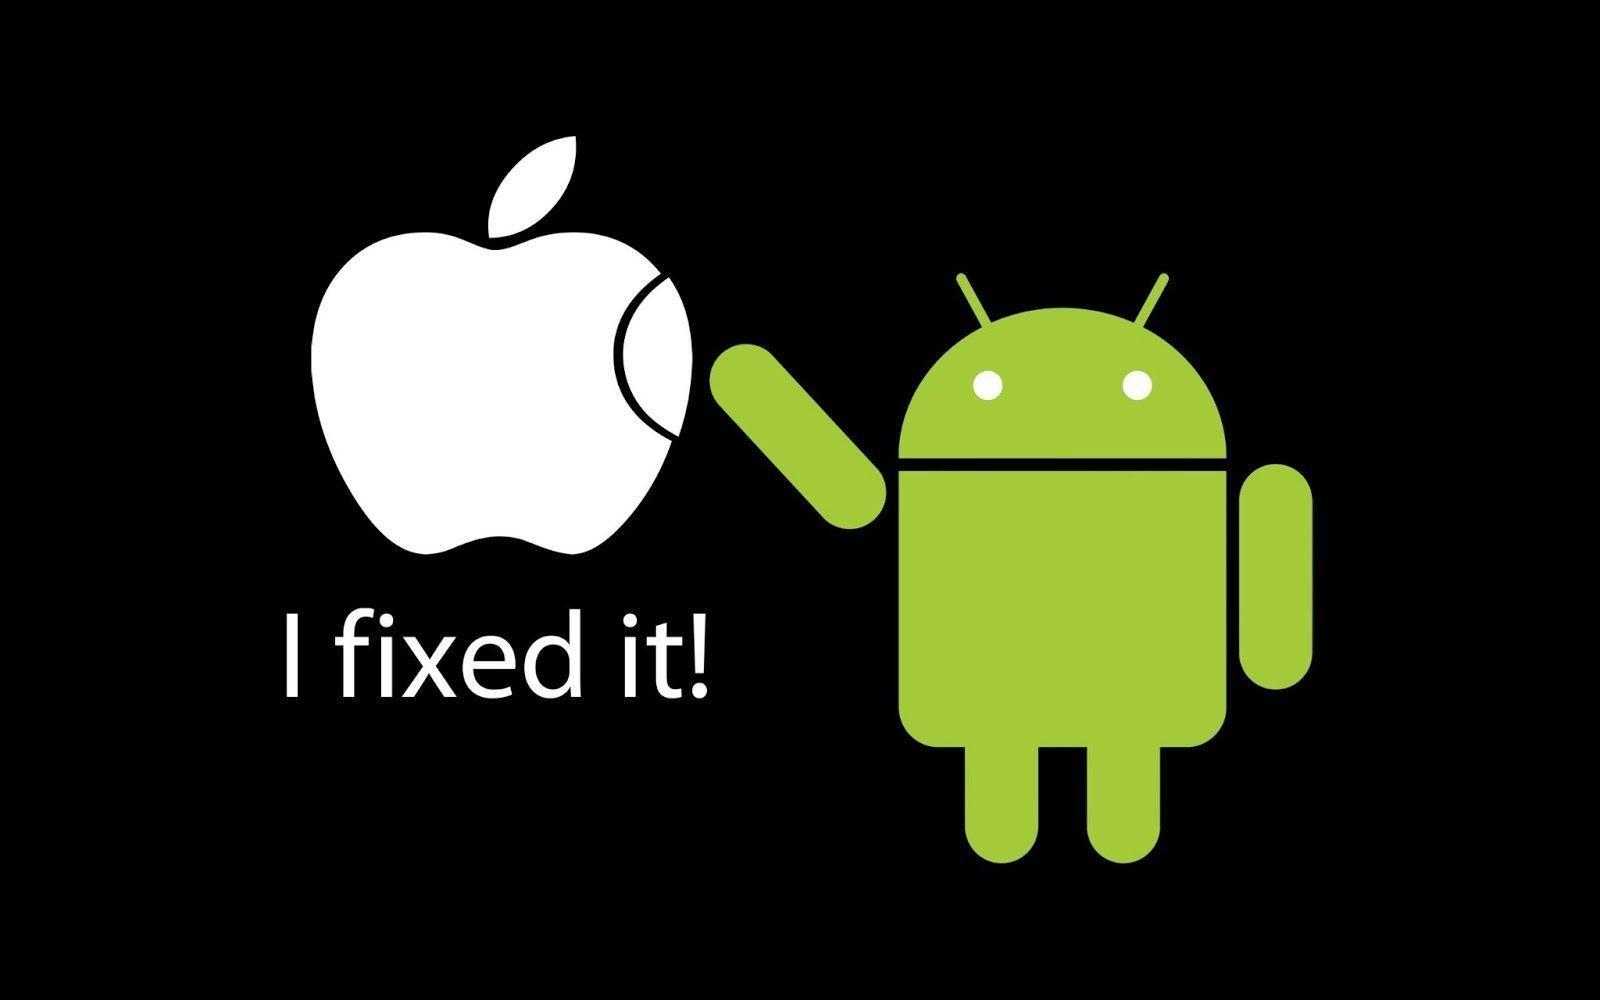 Funny Apple And Android Wallpaper Desktop #7732 Wallpaper ...